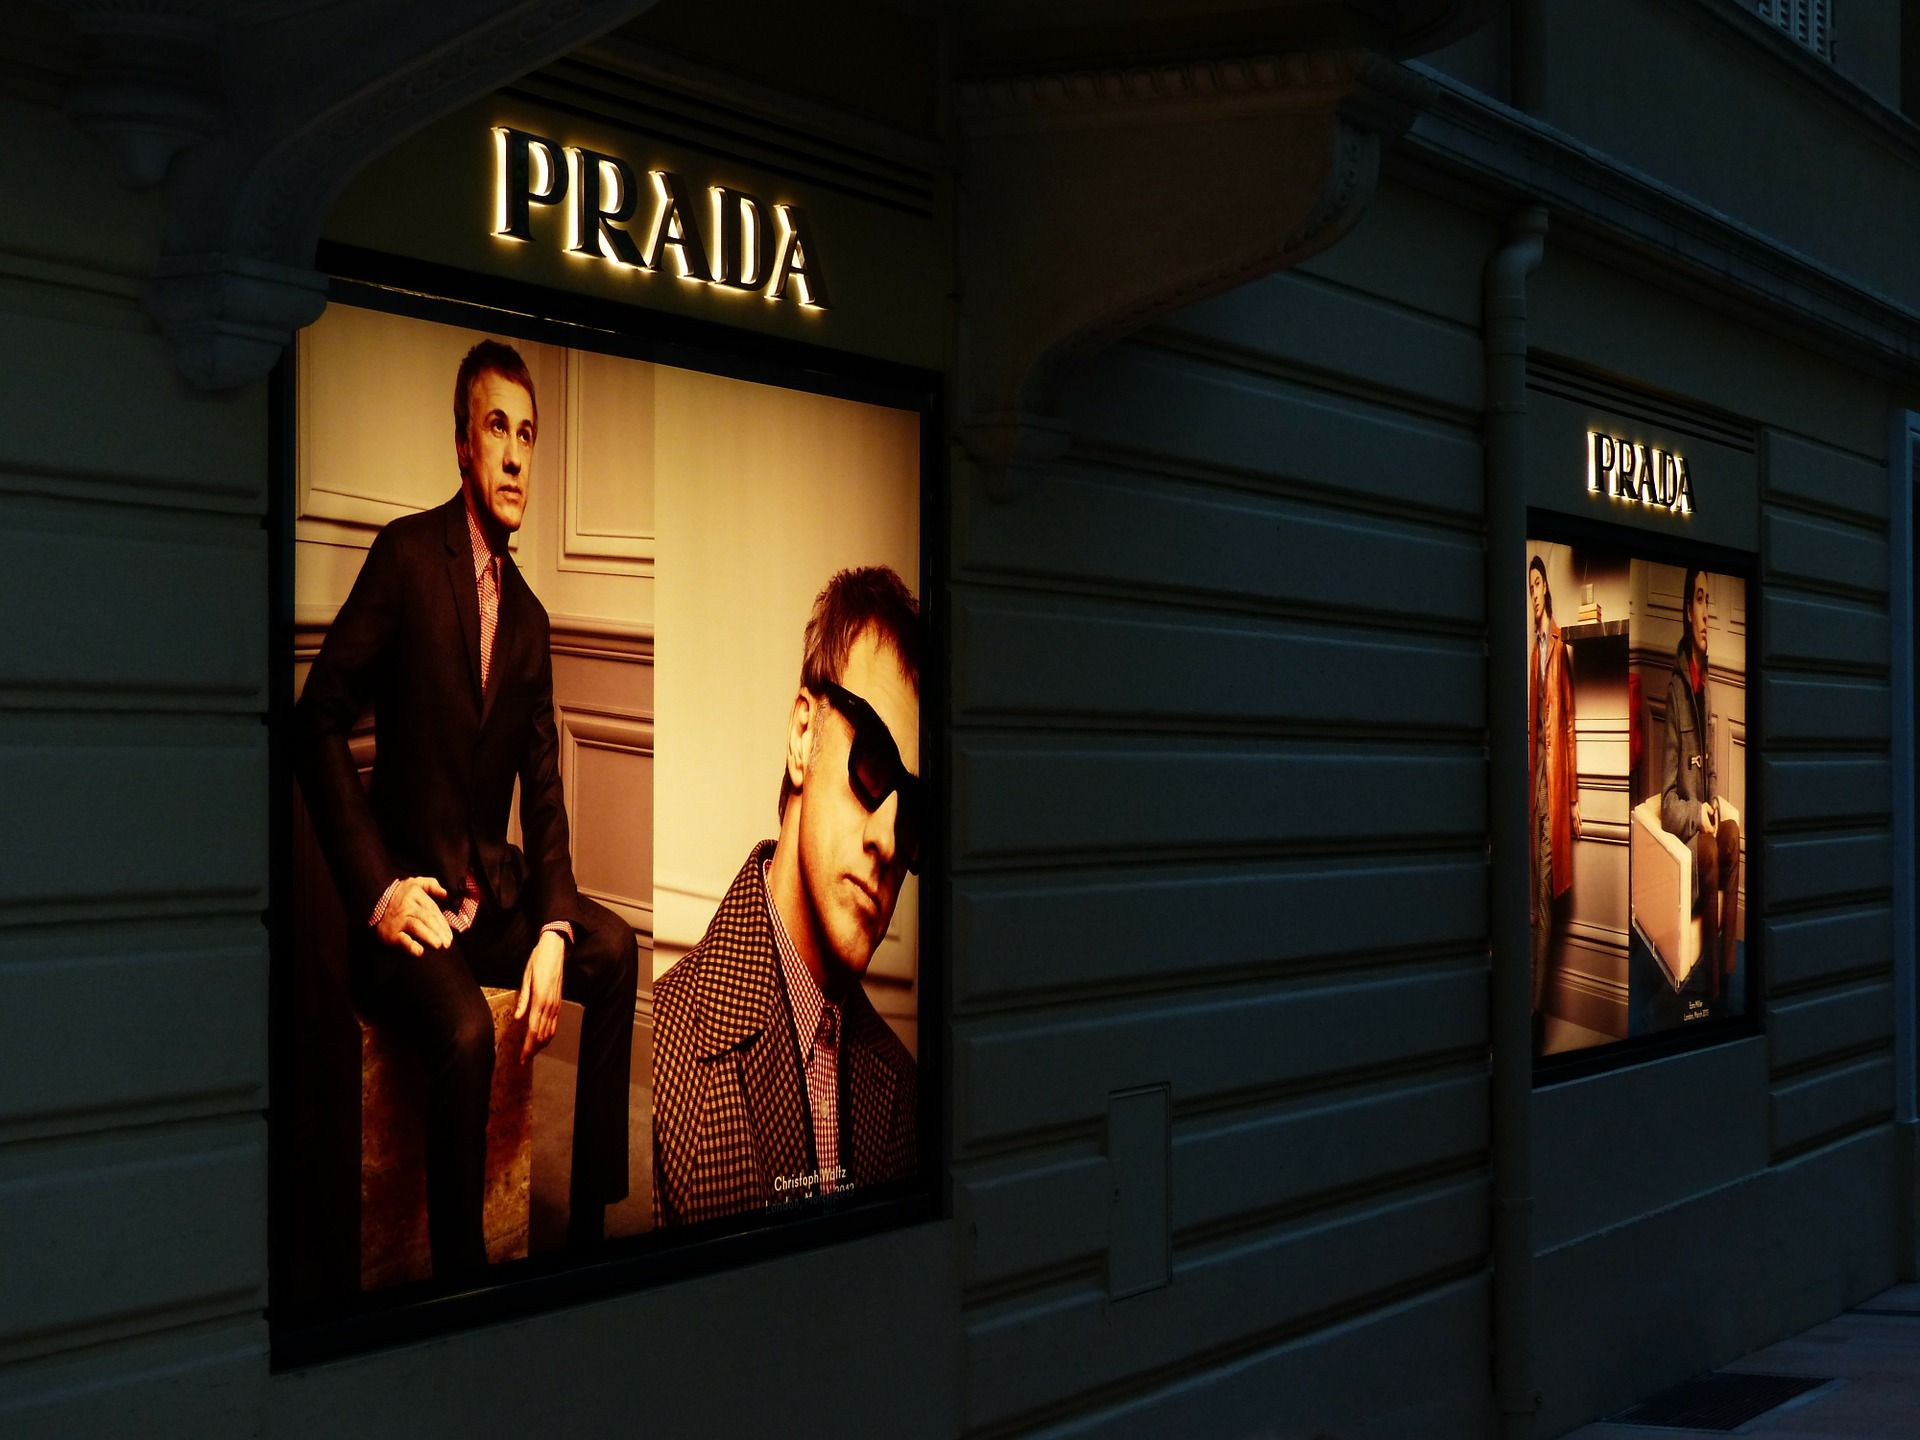 Prada Makes Moves To Include People With Disabilities In The Fashion World